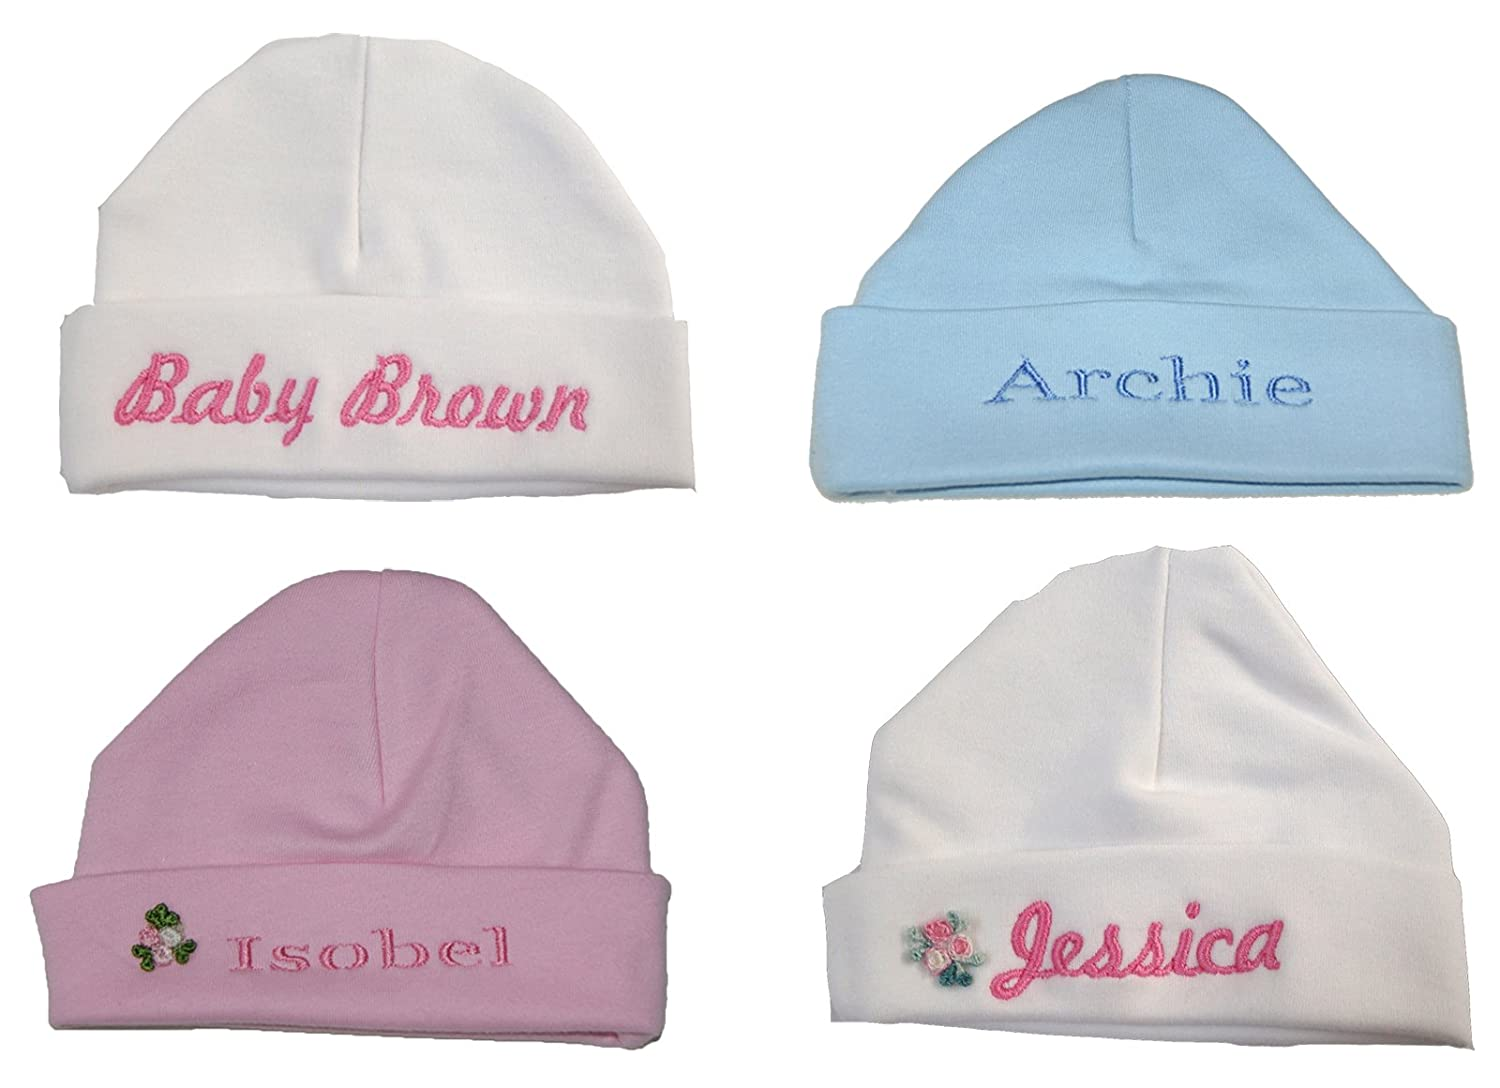 100% Super Soft Double Layered Cotton Personalised Baby Hat Now Available in 2 Sizes. (0-3 Months and 3-6 Months) Sew Sew Special New born baby hat